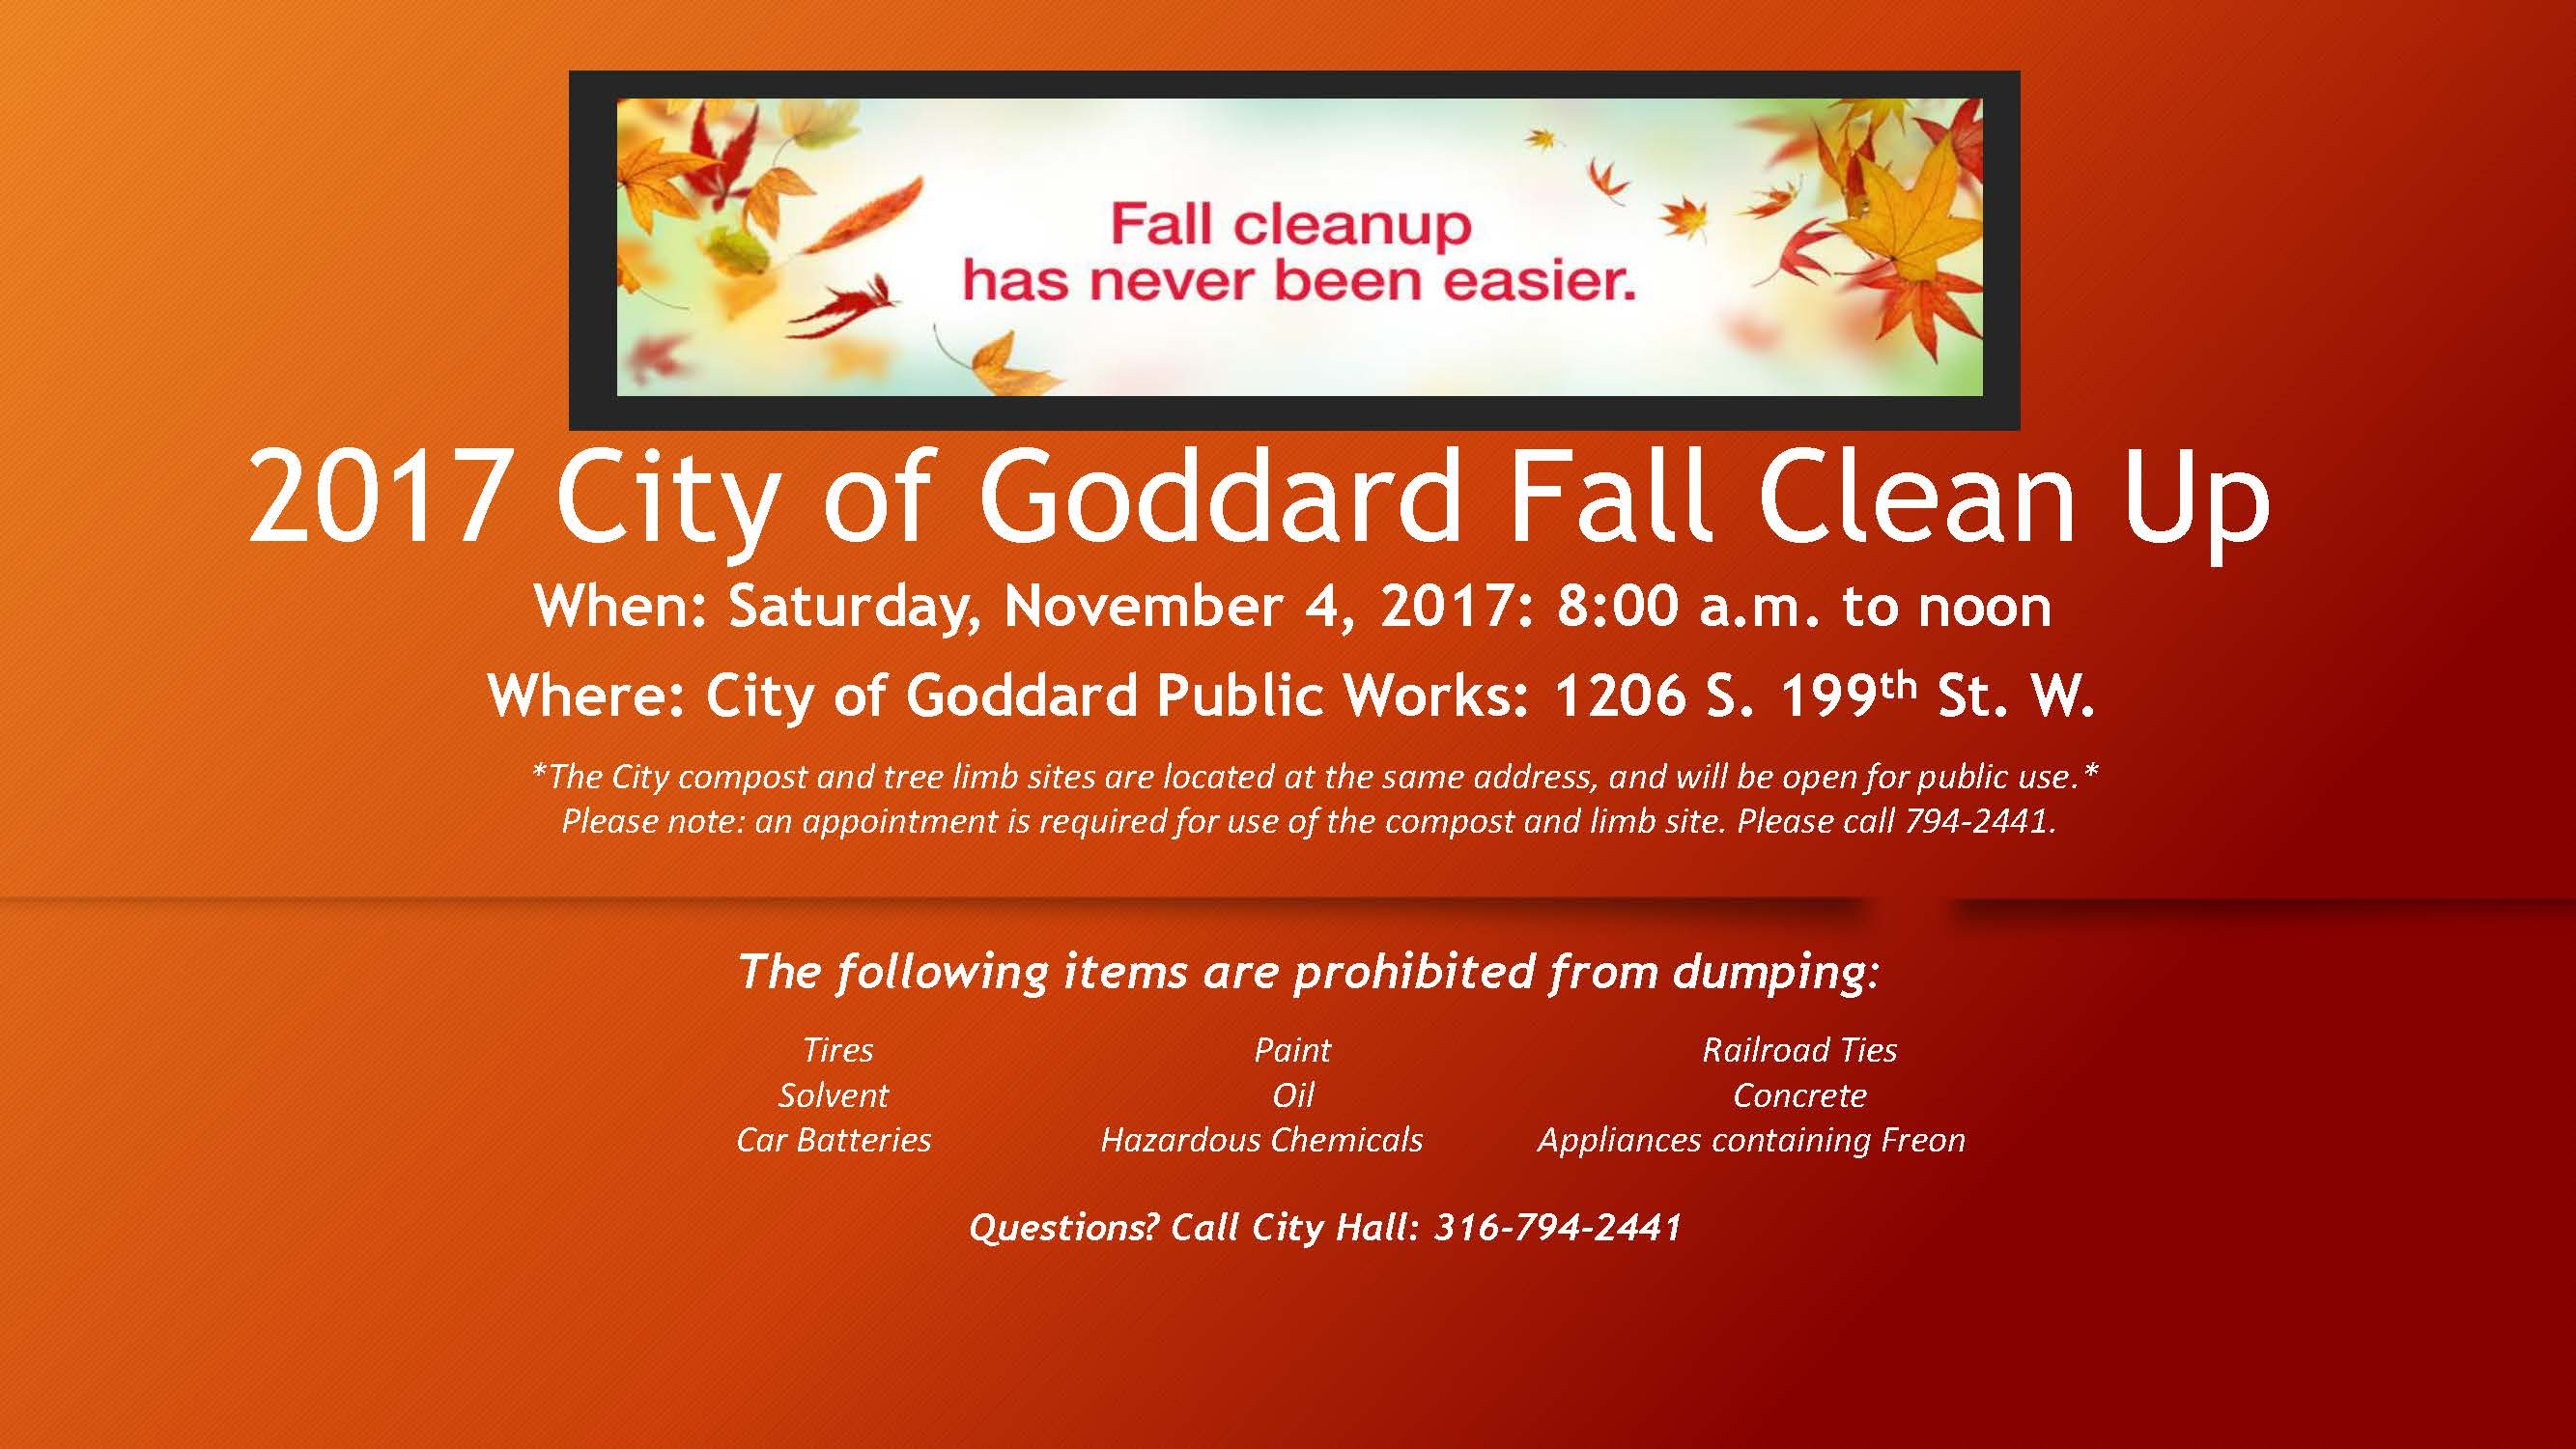 2017 City of Goddard Fall Clean Up Flyer